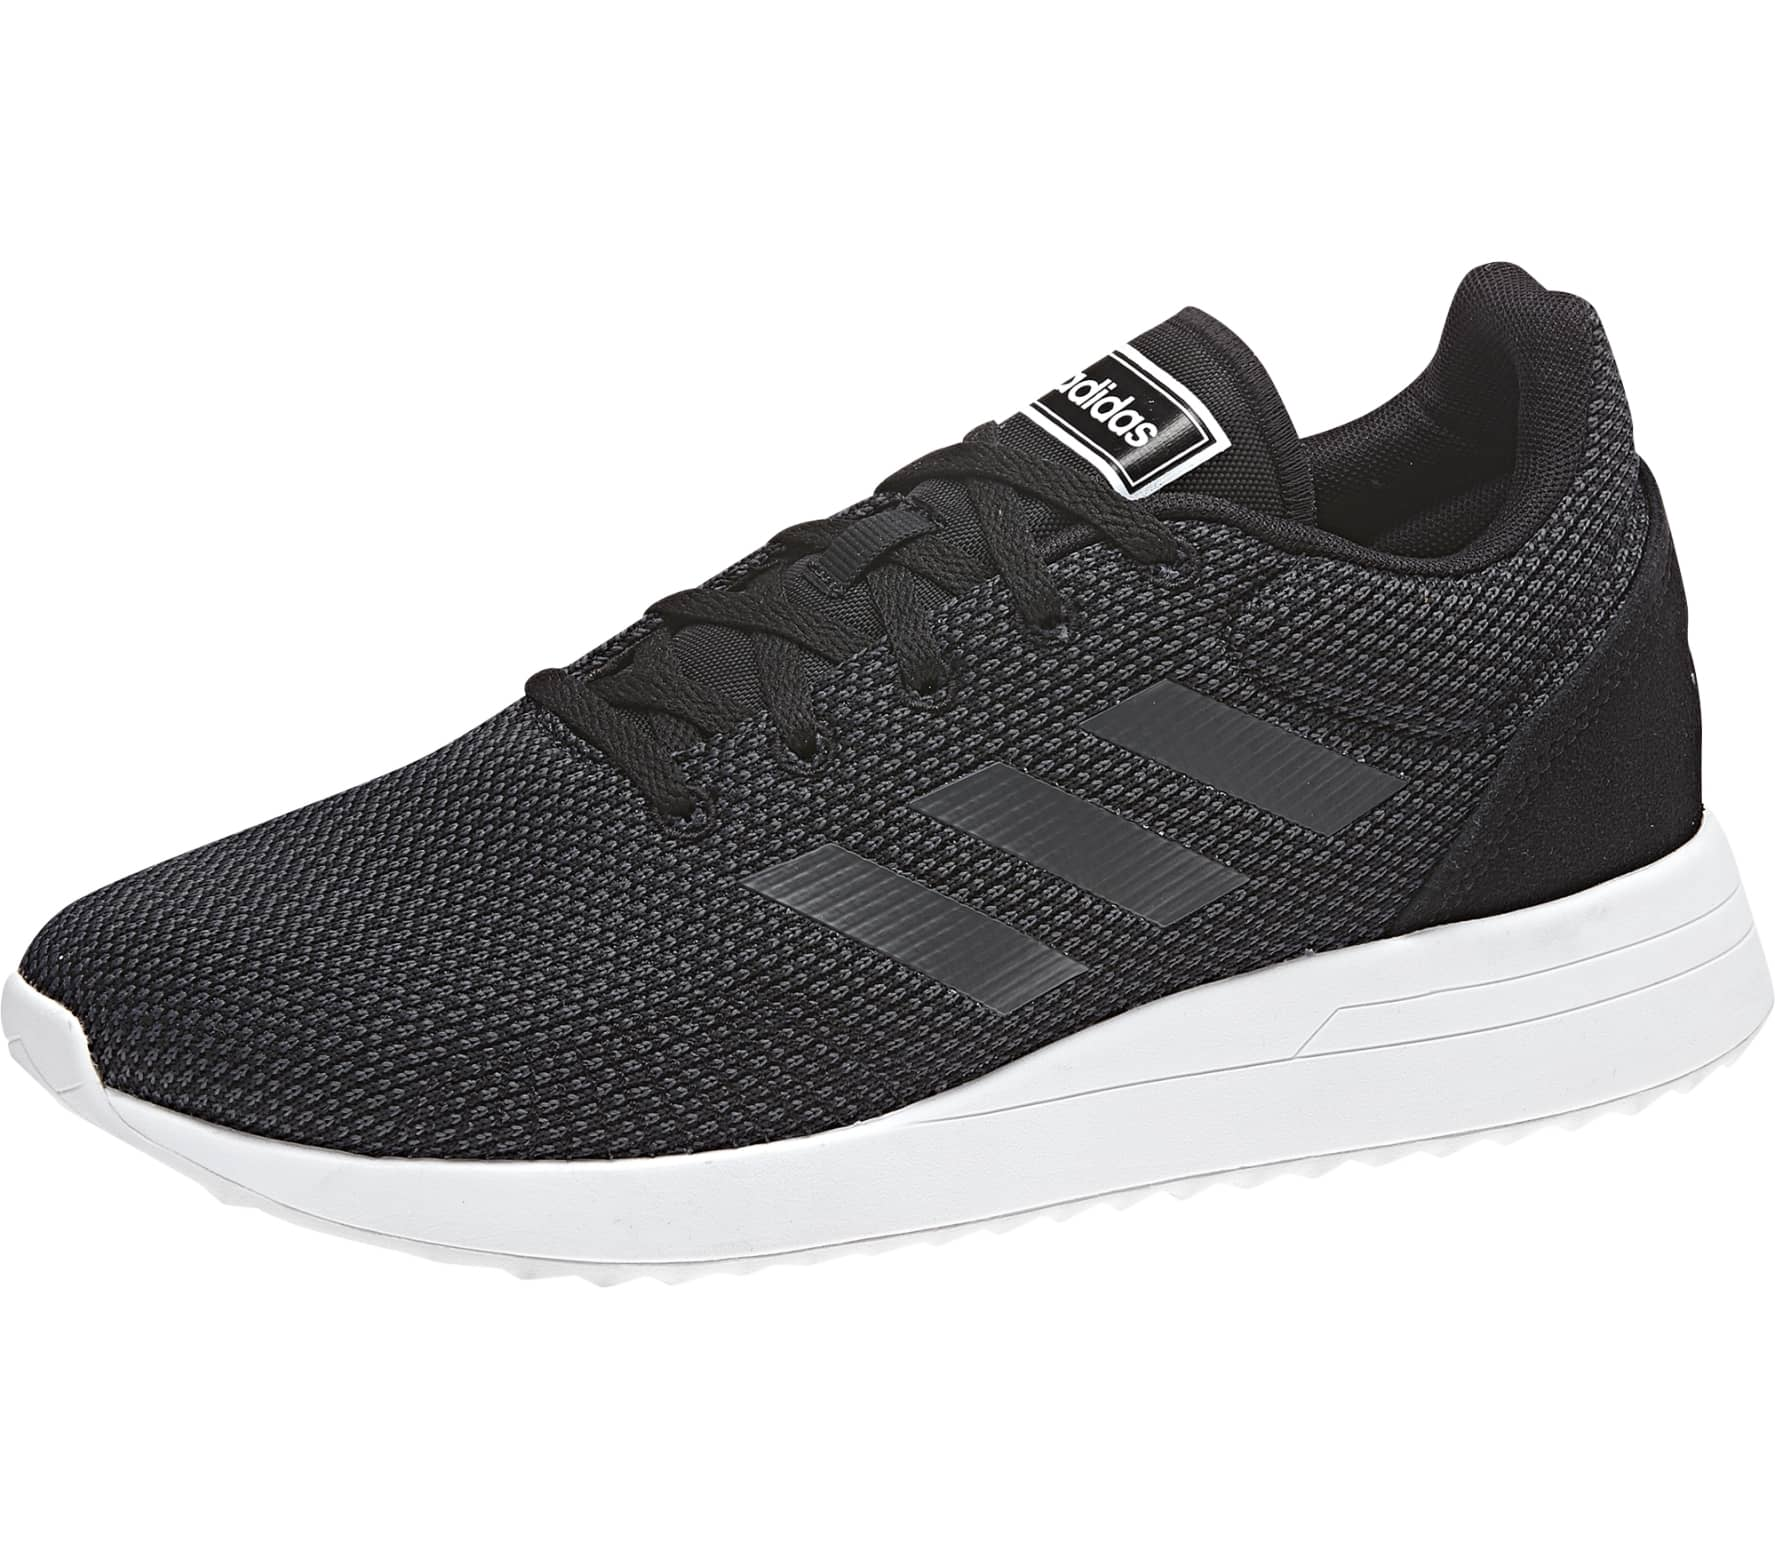 Adidas Run 70s Women S Running Shoes Black Buy It At The